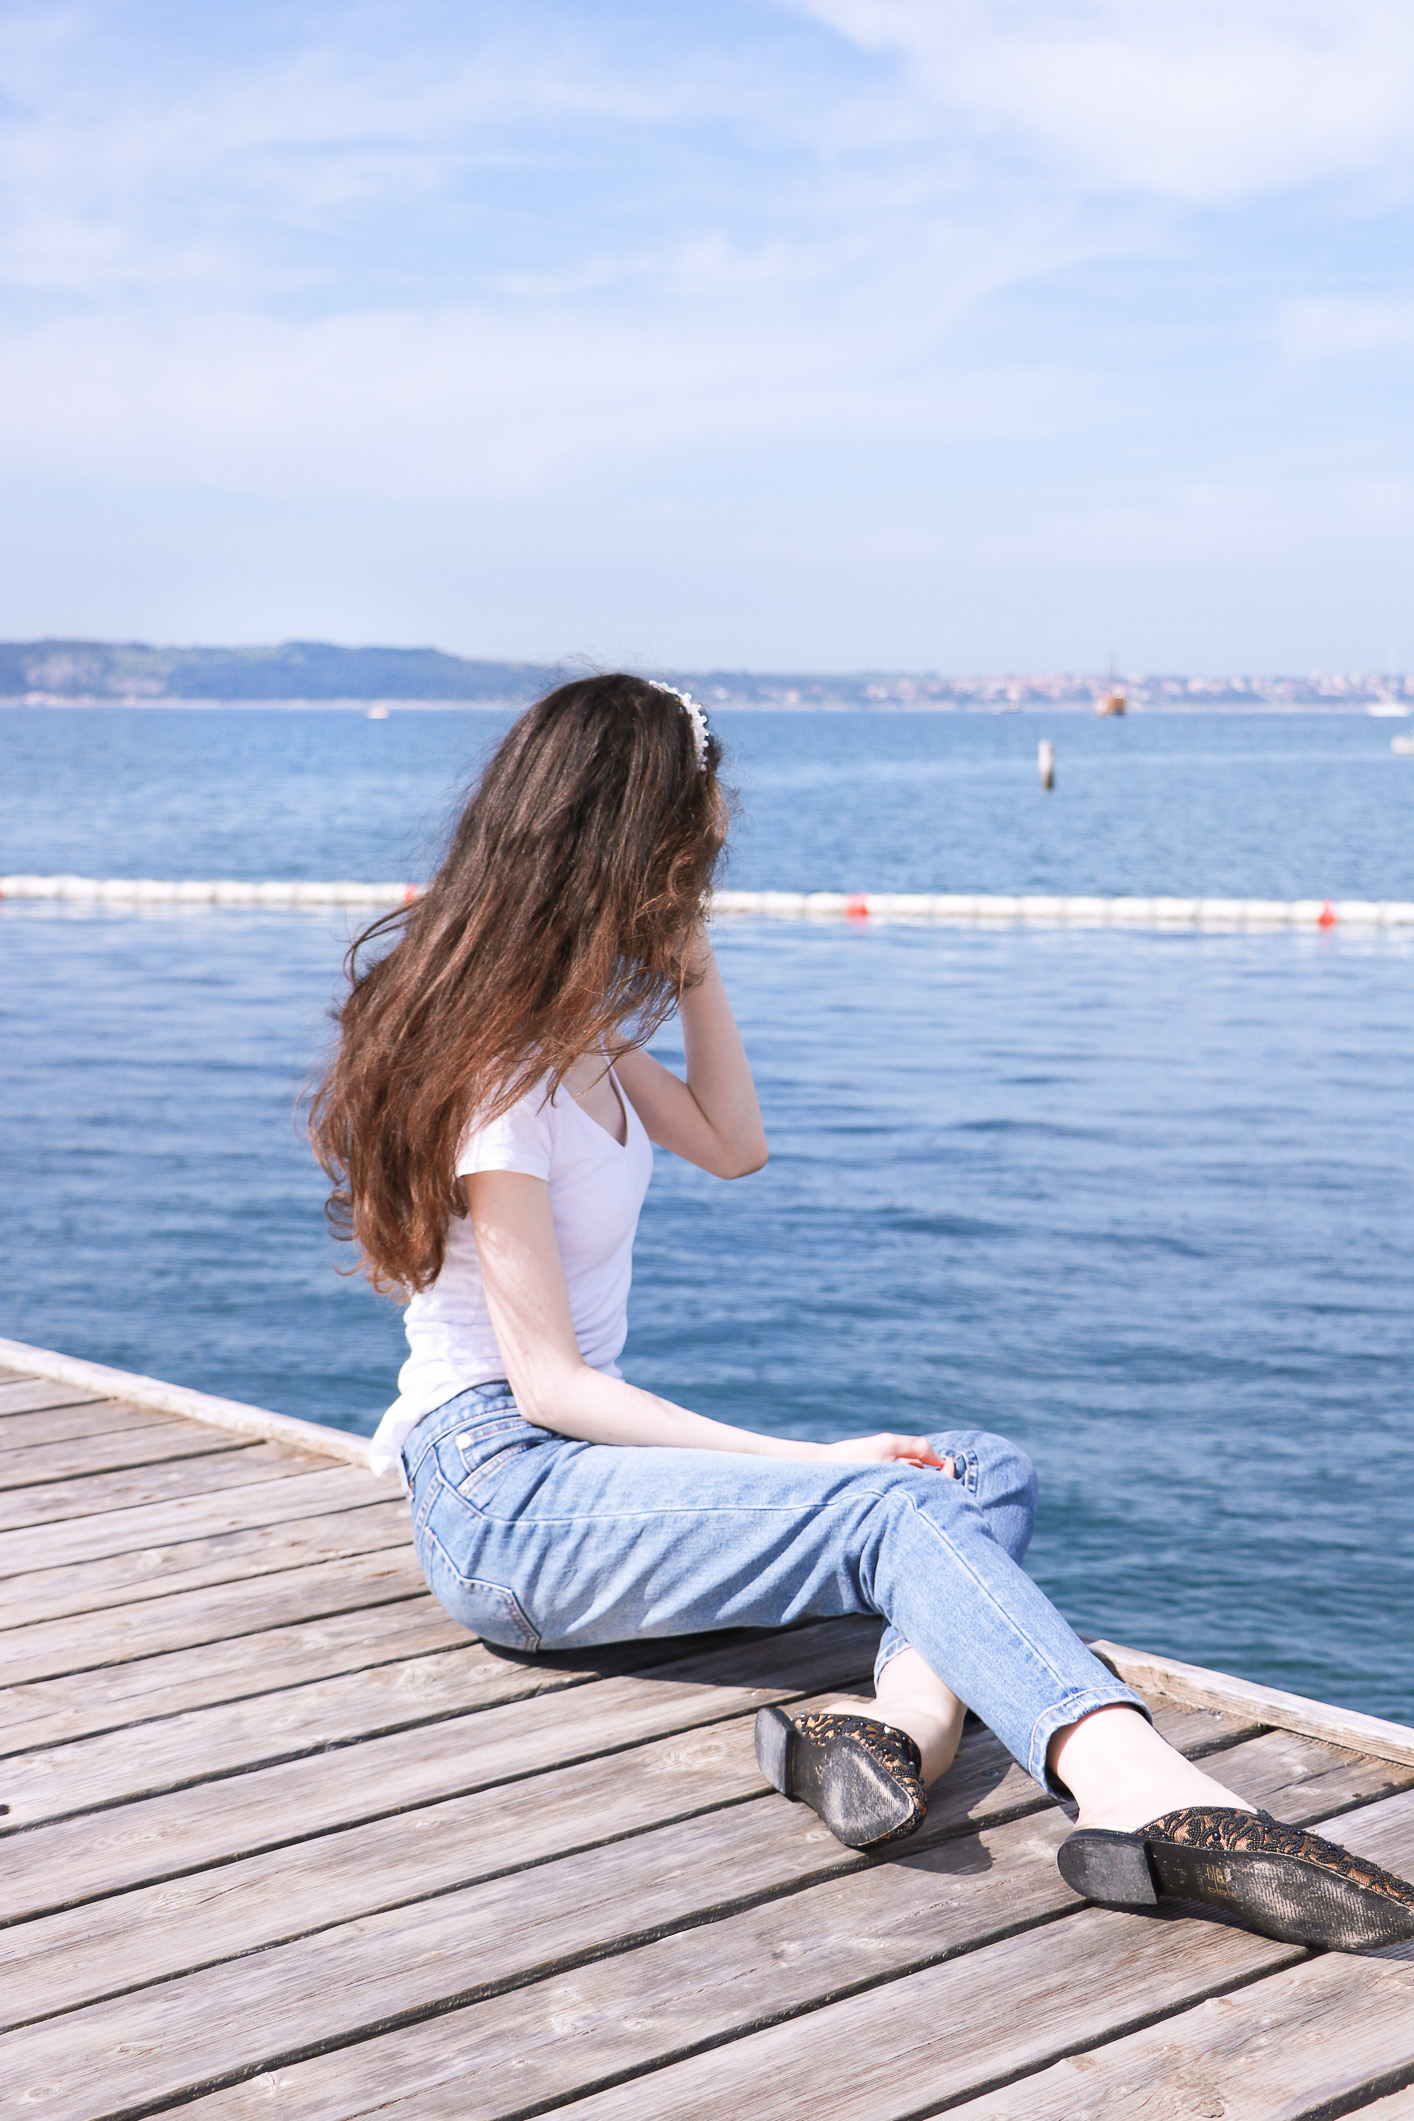 Fashion blogger Veronika Lipar of Brunette From Wall Street sharing how to elevate a casual outfit while by the Adriatic sea